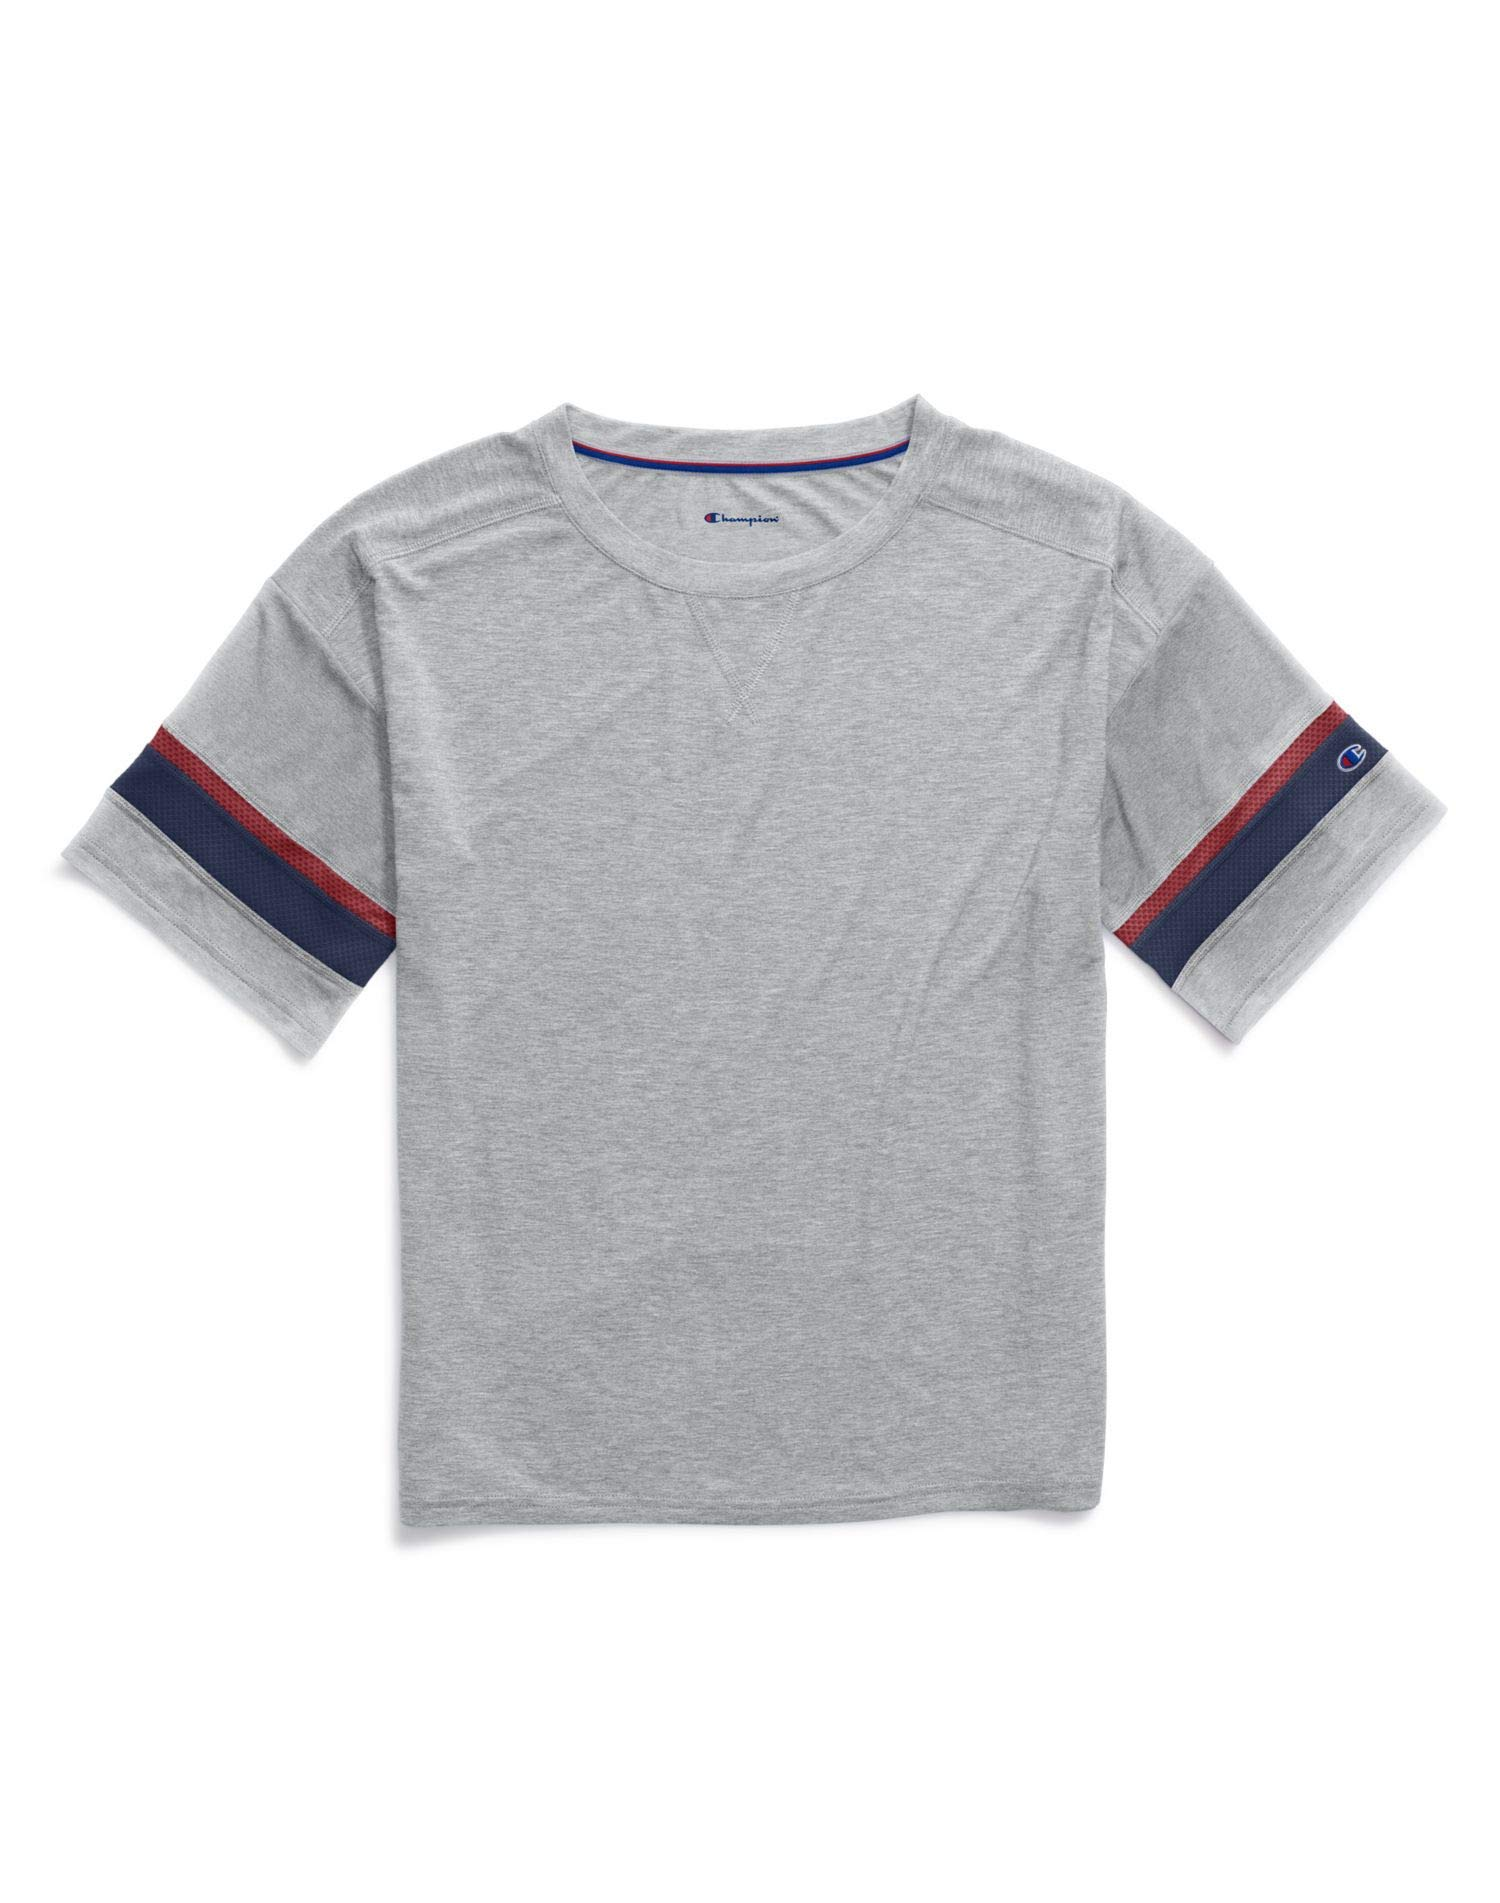 Champion Women's Gym Issue Football Tee, Oxford Gray Heather, X-Small